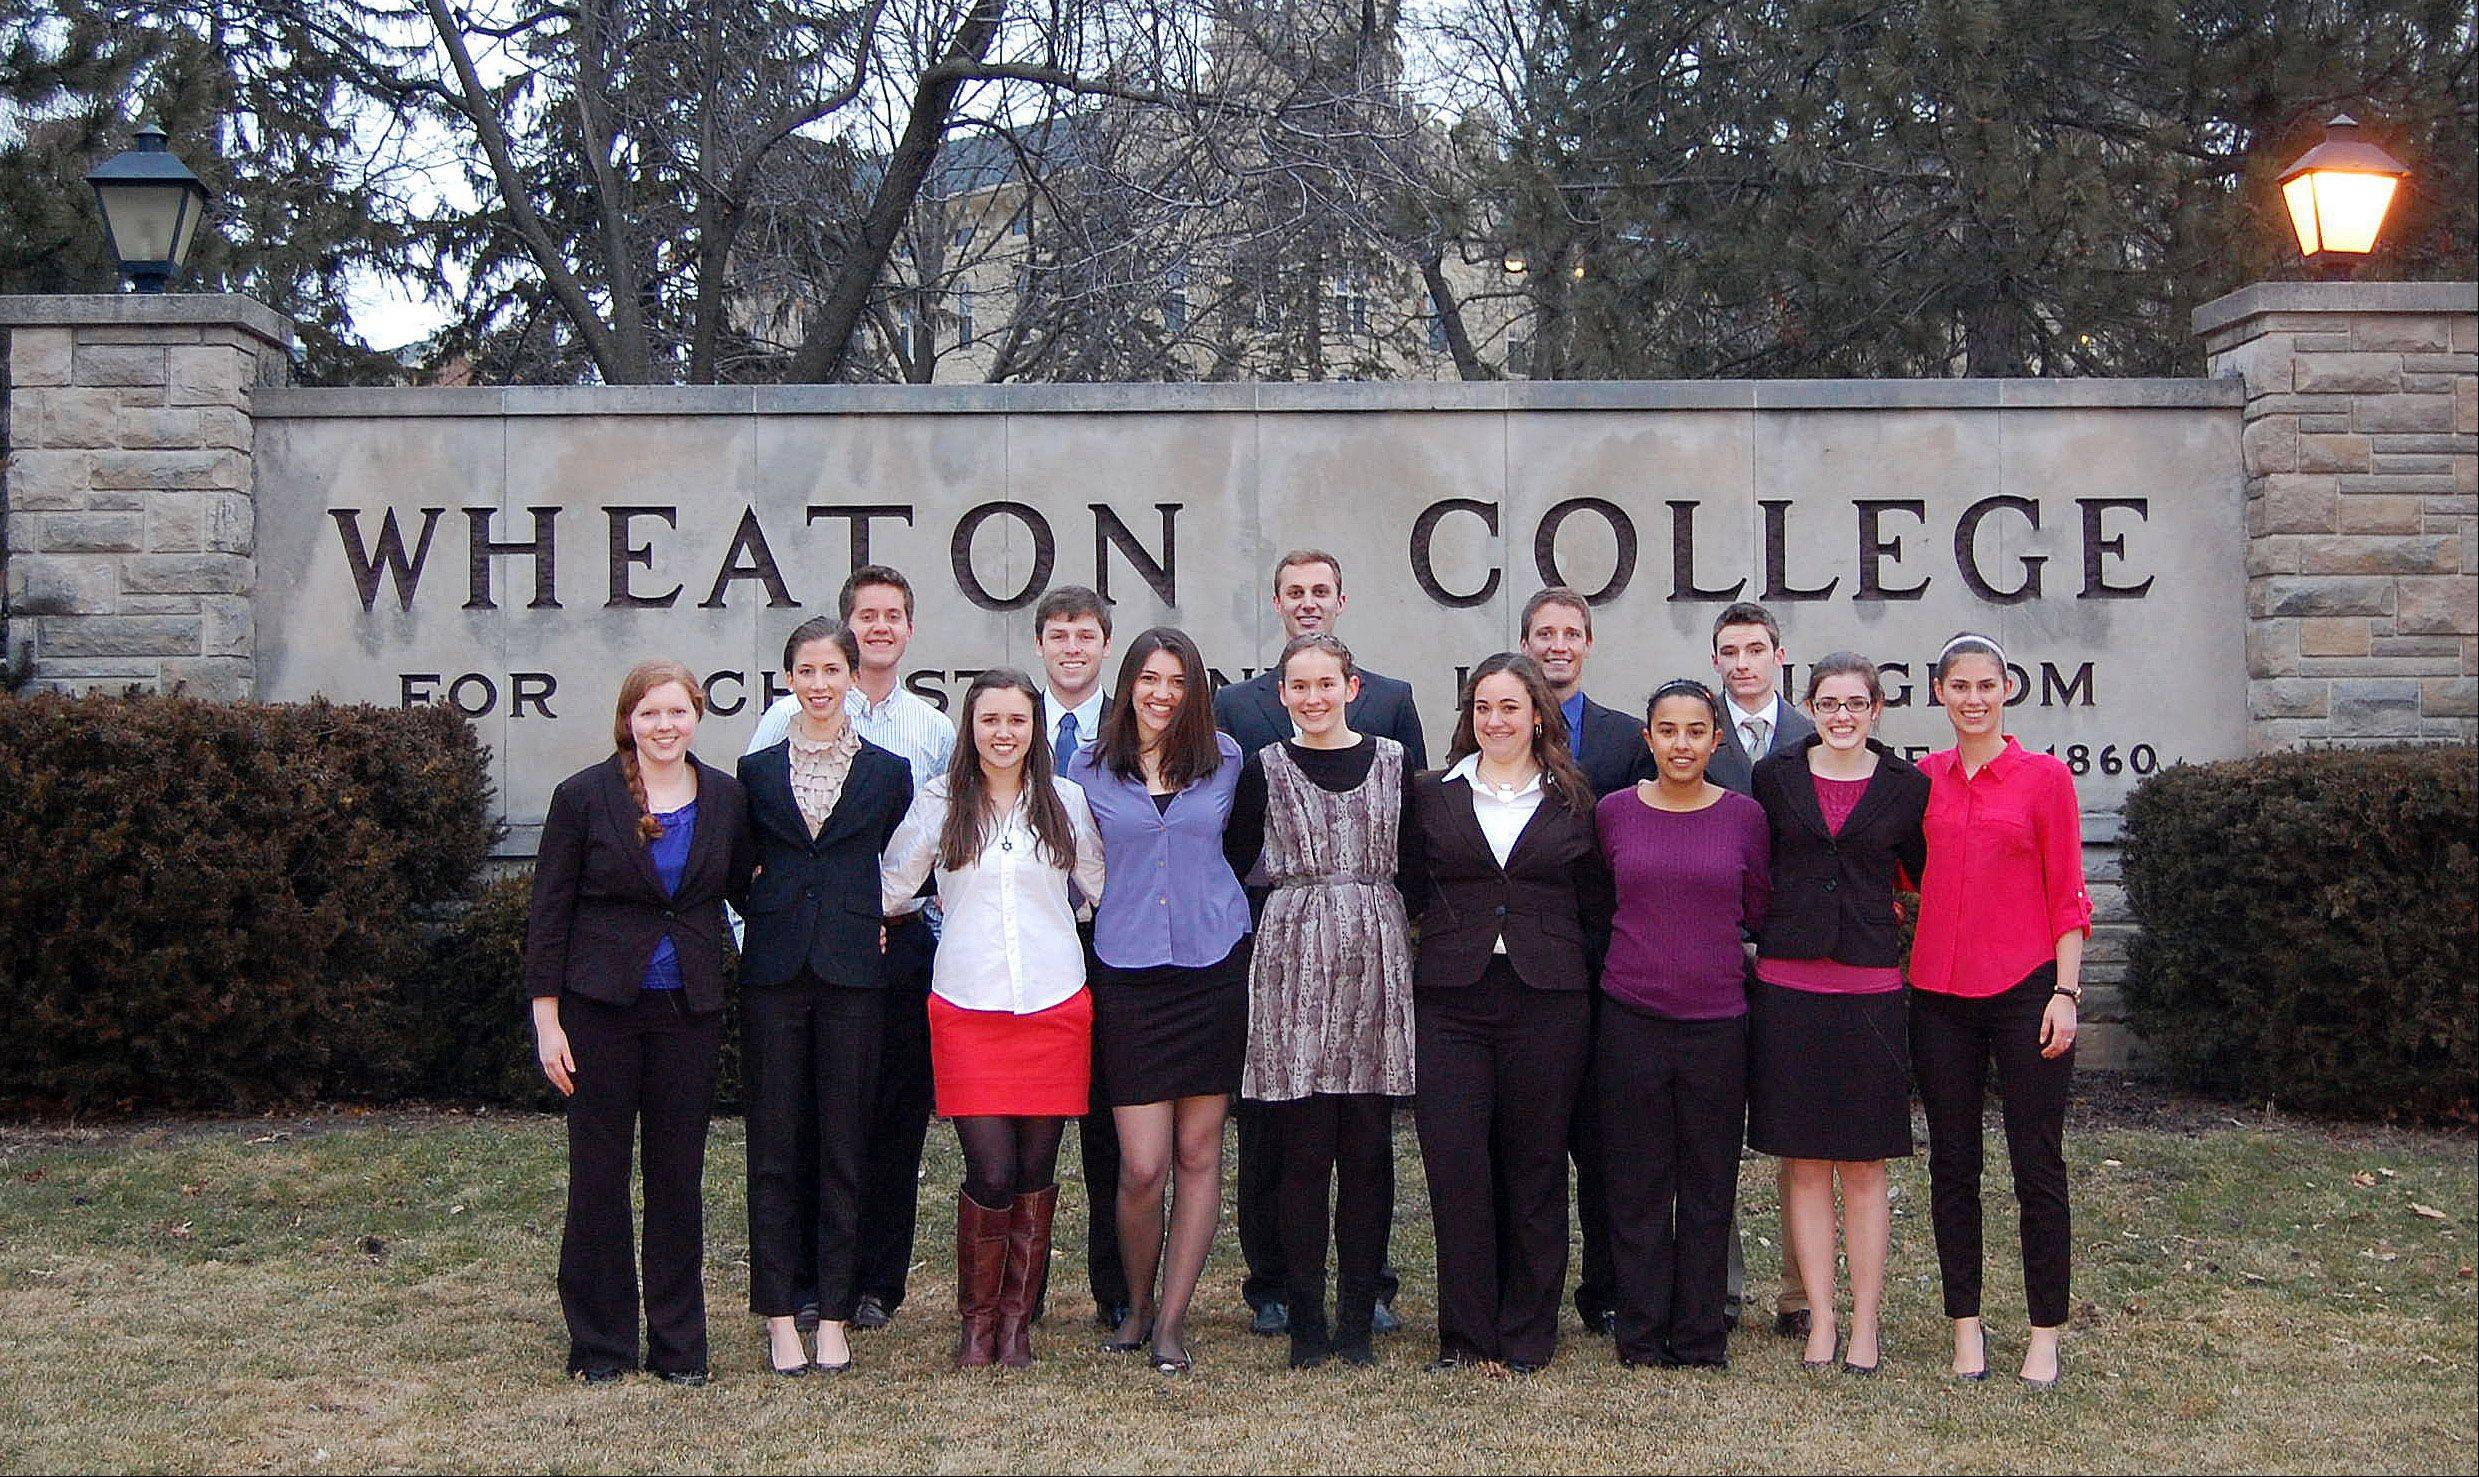 The Wheaton College Mock Trial Team is, front row, from left: Anne Davidson, Annie Chestnut, Lindsey Gevry, Kelly Farley, Margaret Winchell, Lauren Carini, Jasmine Stein, Abigail Canfield and Elizabeth Schriver. Back row, from left: Jason Chapman, Dylan Andres, McNair Nichols, Trenton Van Oss and Stephen Quillen.